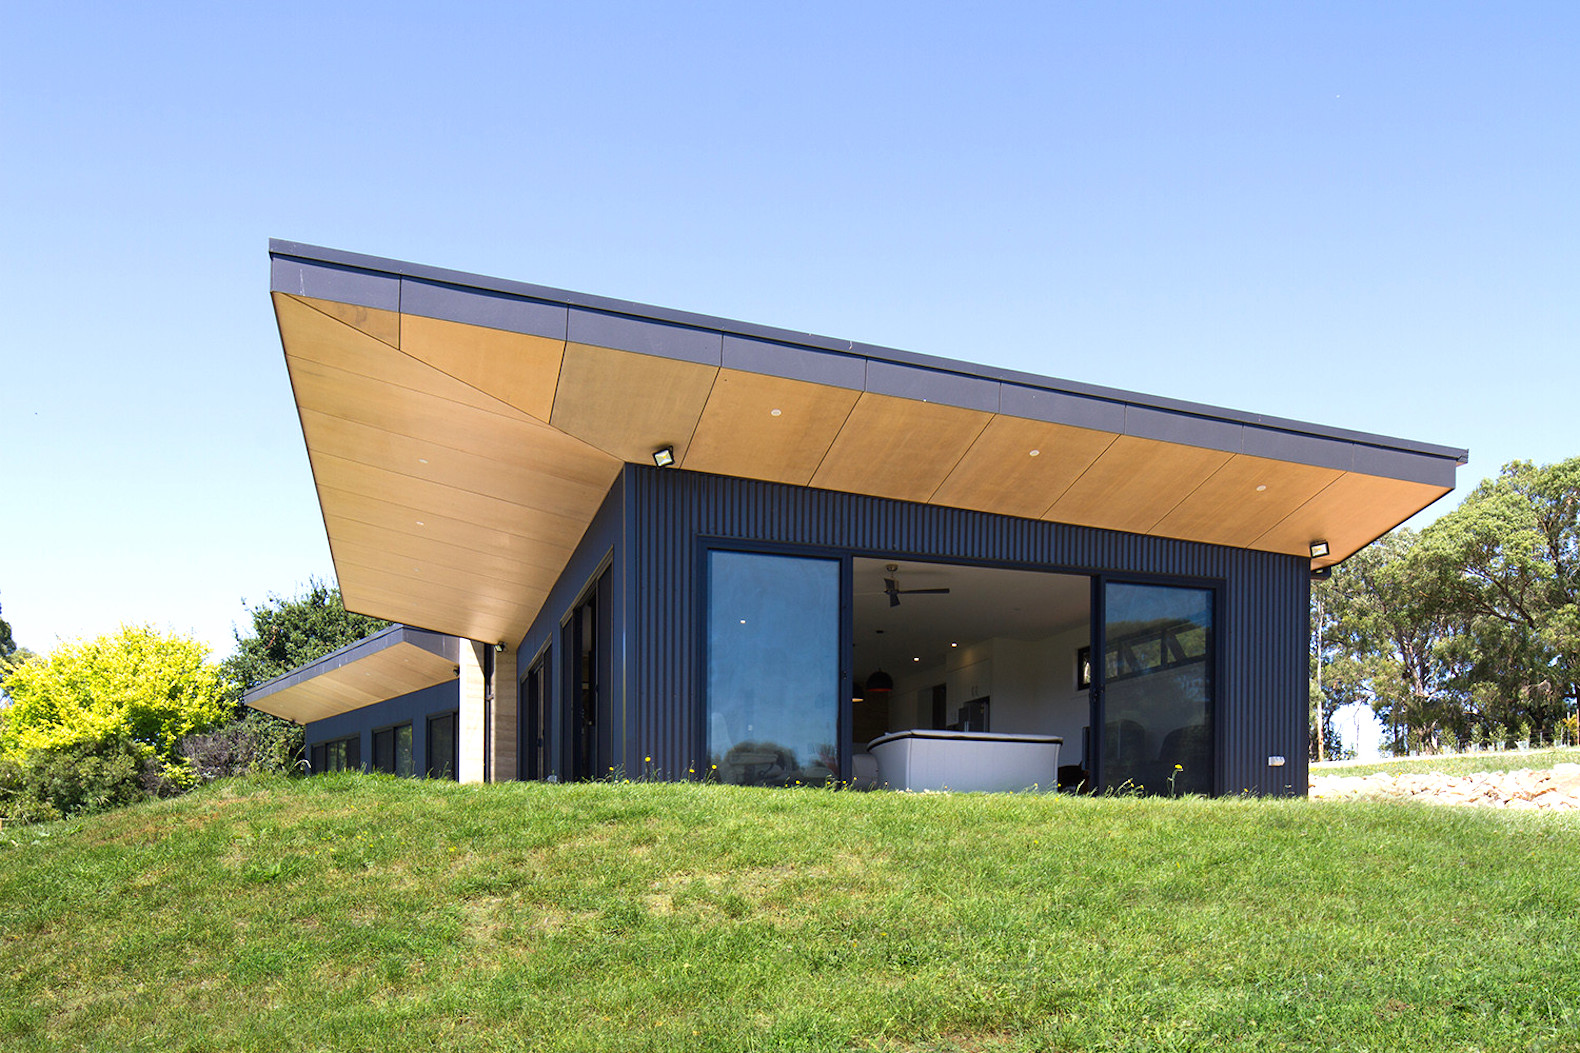 Rammed earth walls form the core of this modern australian home